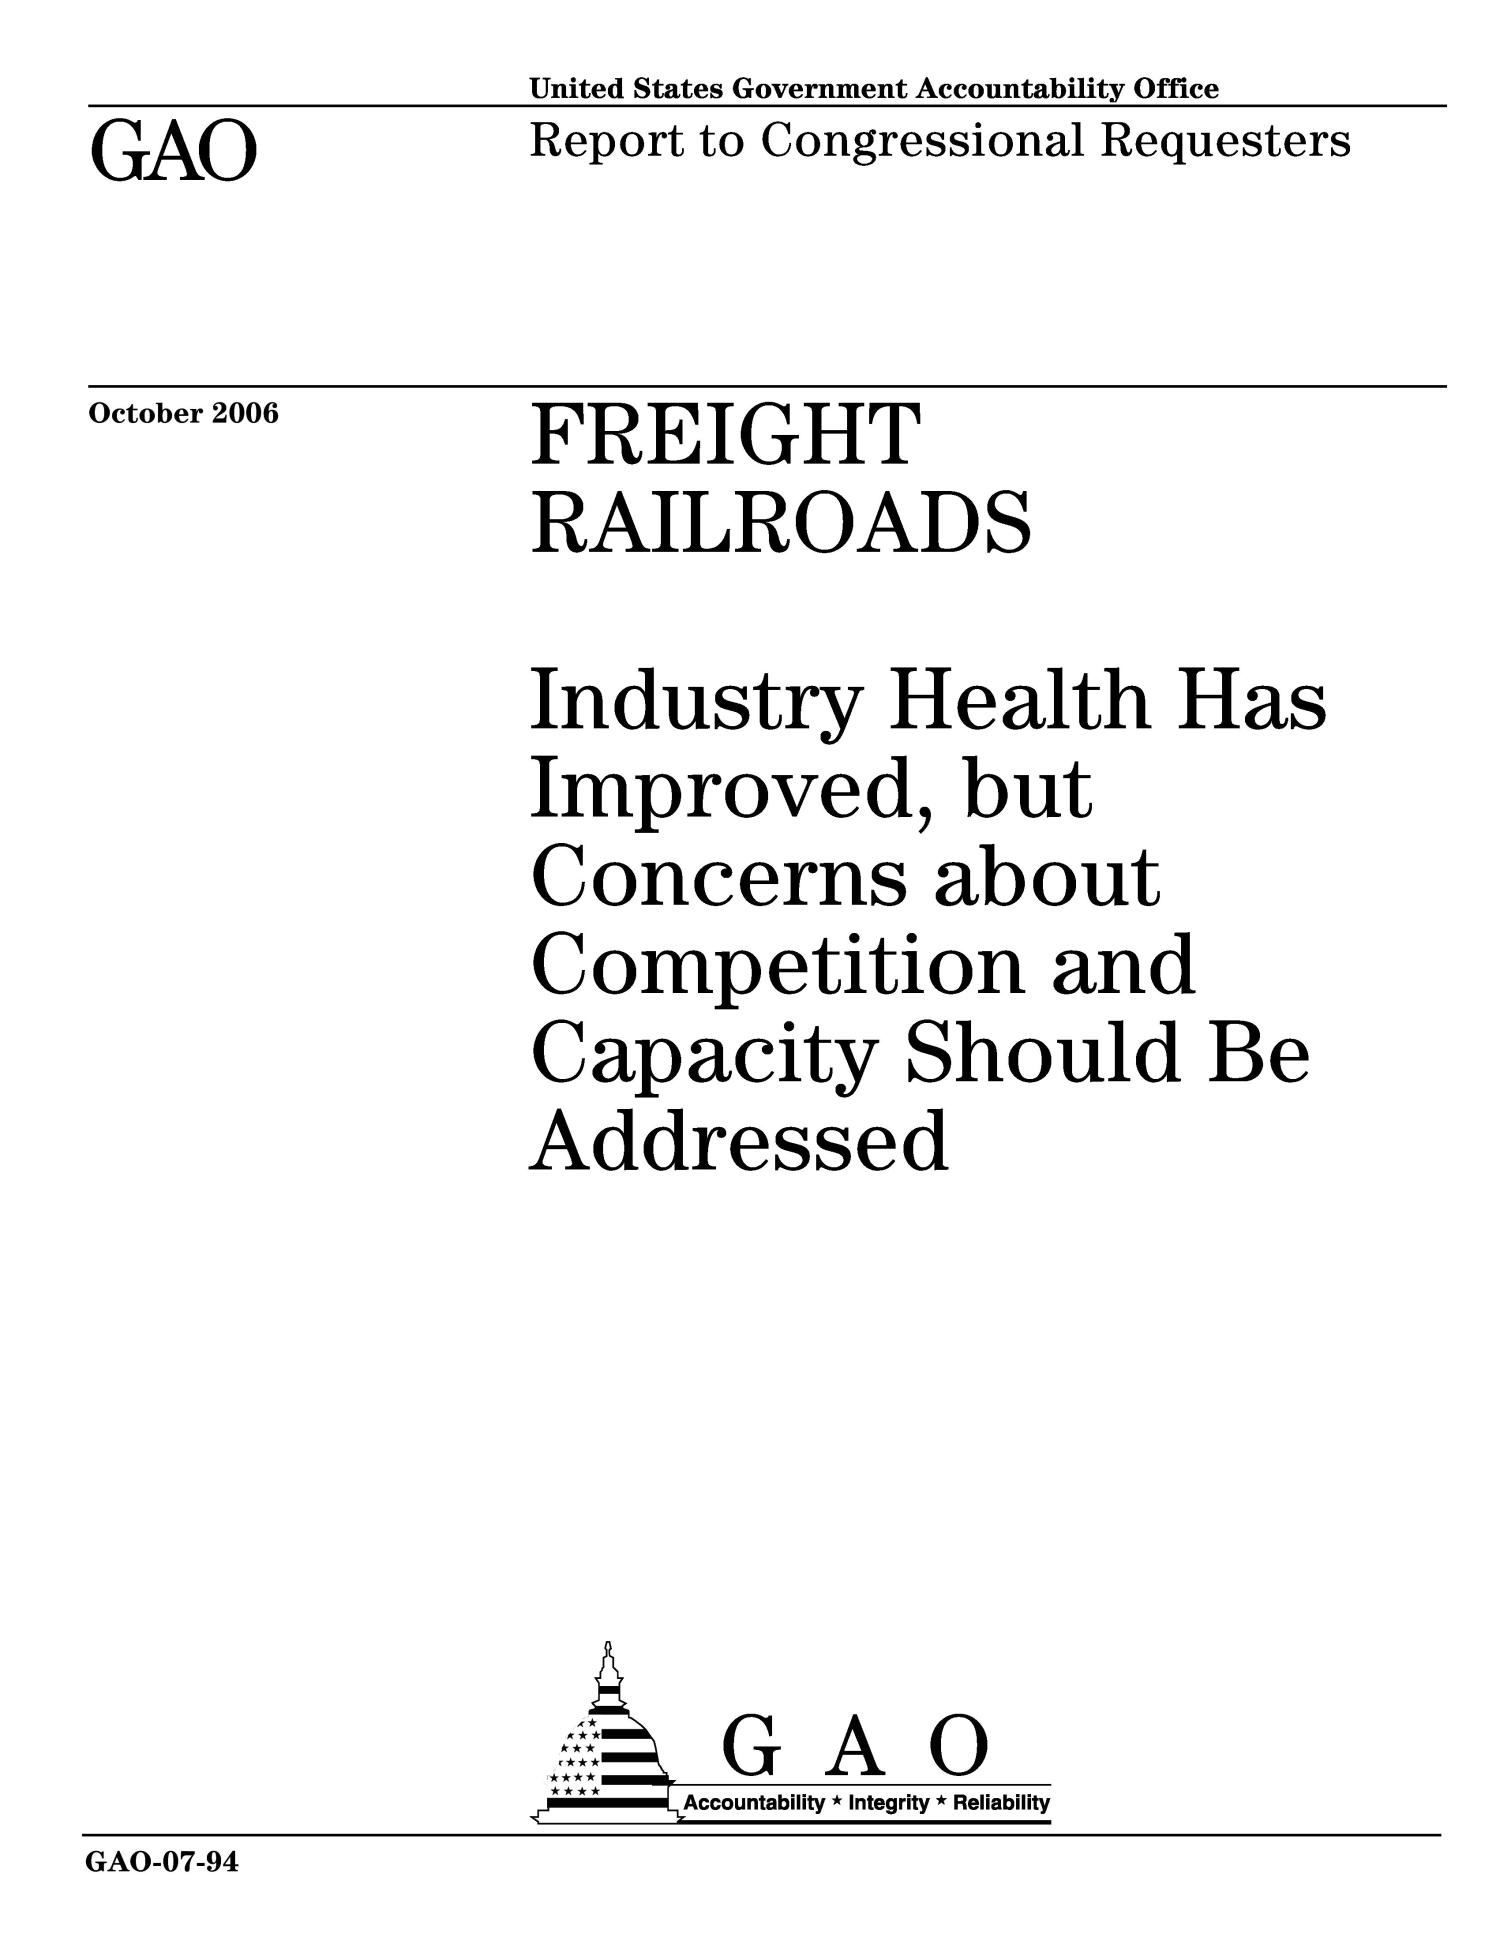 Freight Railroads: Industry Health Has Improved, but Concerns about Competition and Capacity Should Be Addressed                                                                                                      [Sequence #]: 1 of 95